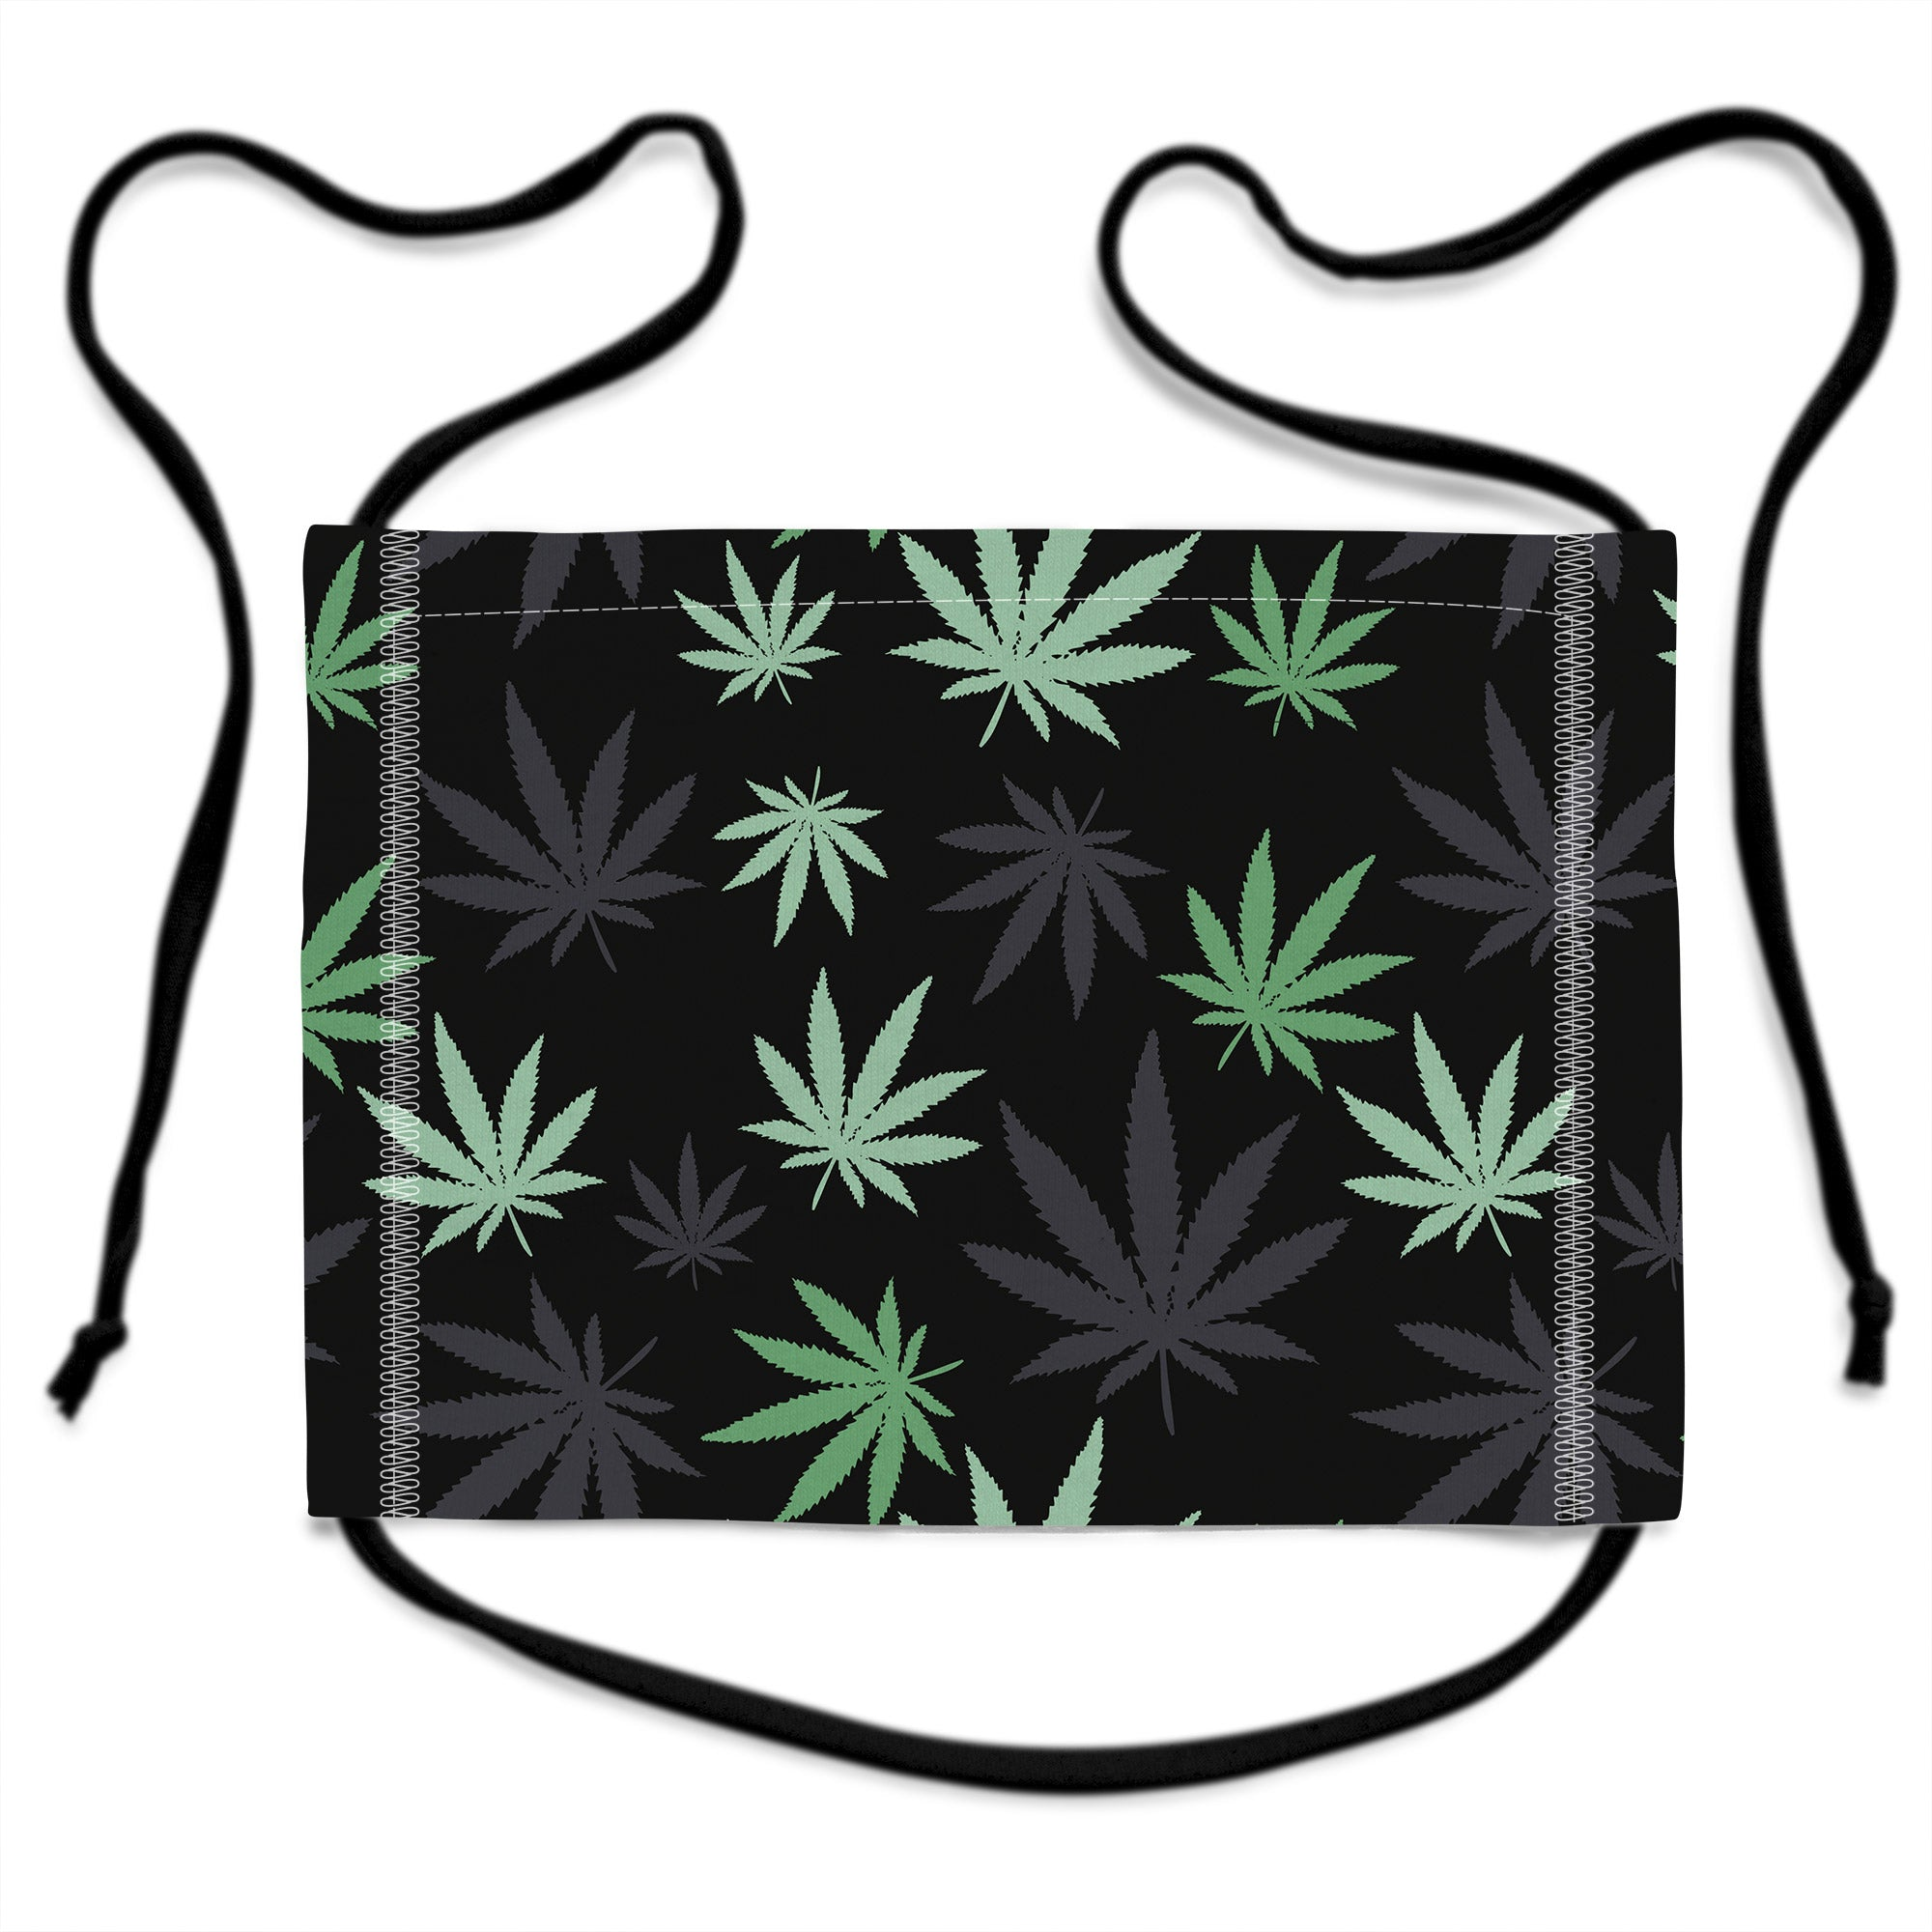 CHEAP Black Weed Face Mask 26660545799 – Clothing Accessories